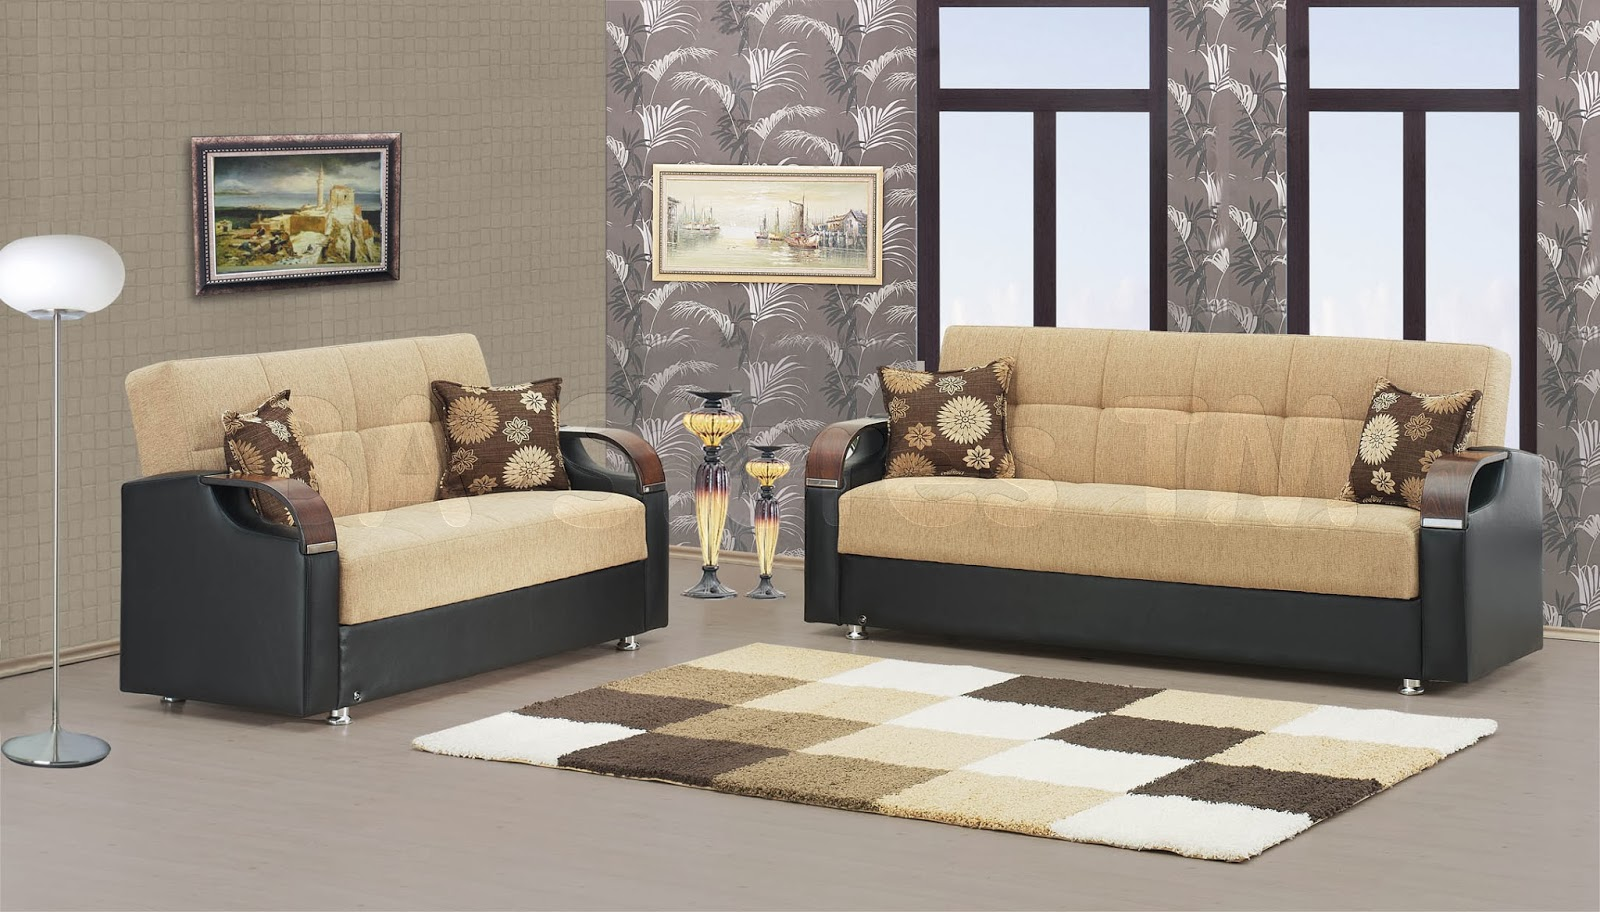 Living room design with leather sofa living room for New drawing room sofa designs